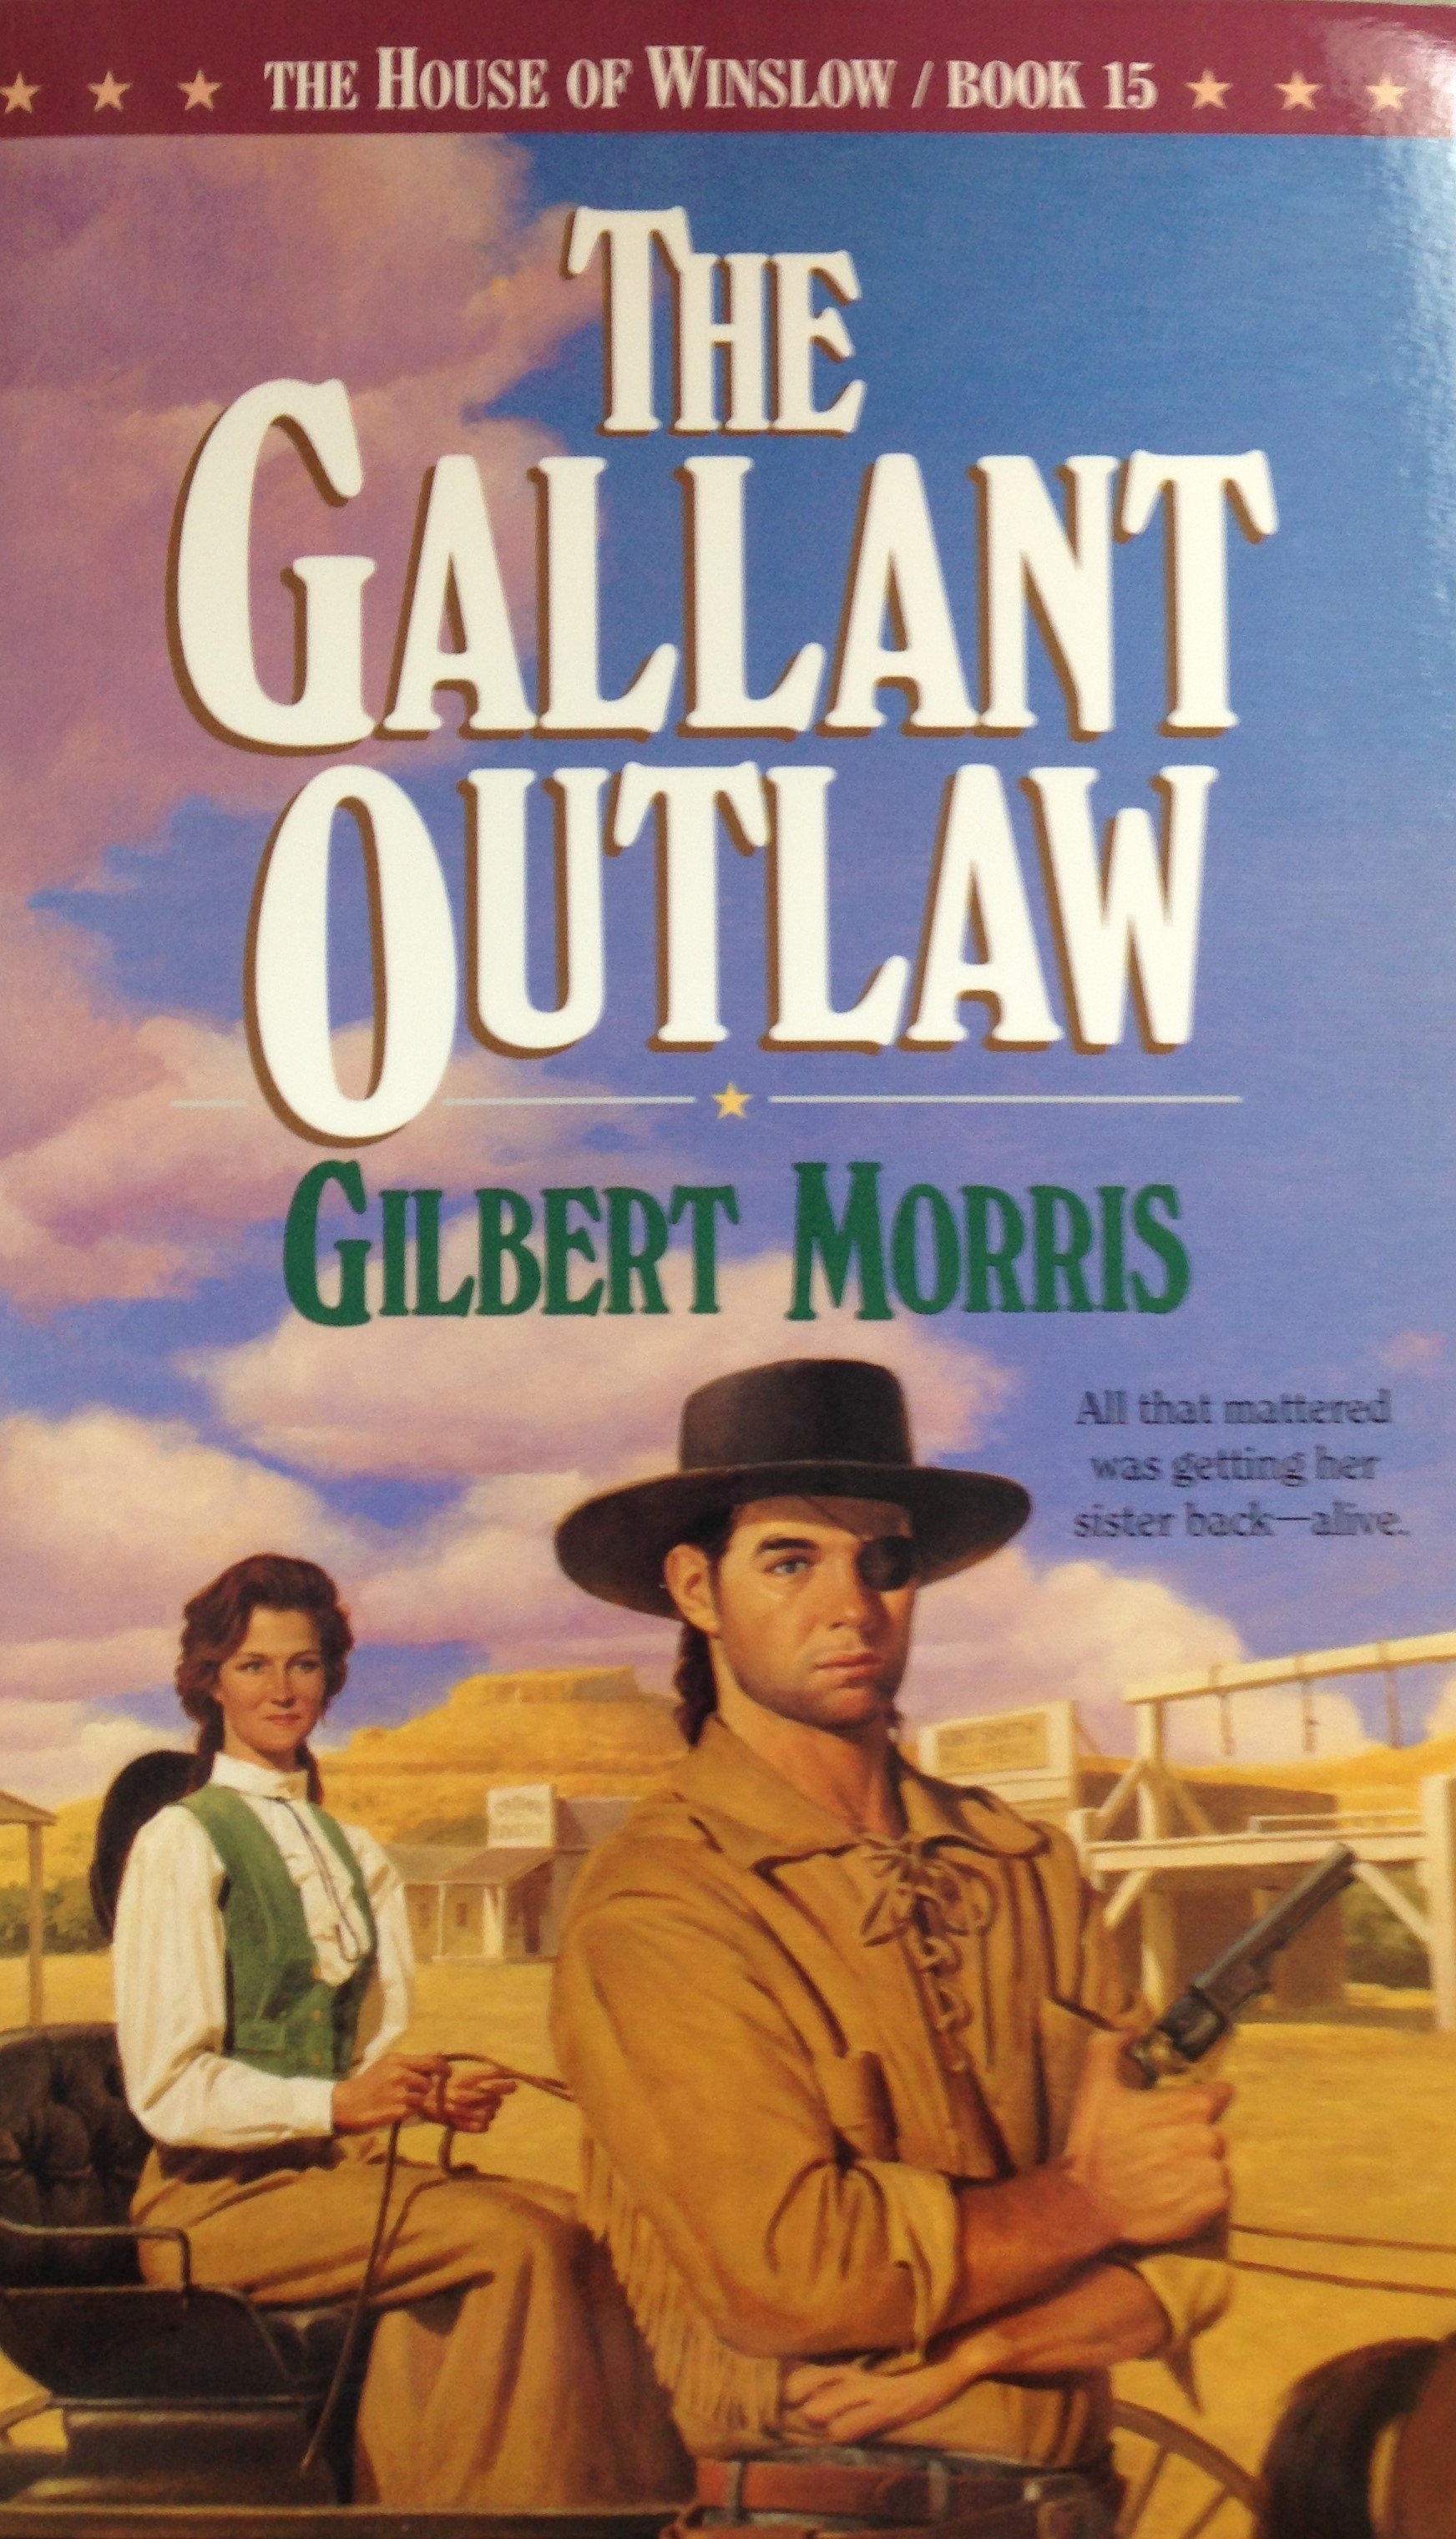 The Gallant Outlaw :  The House of Winslow Book 15 by Gilbert Morris 00109